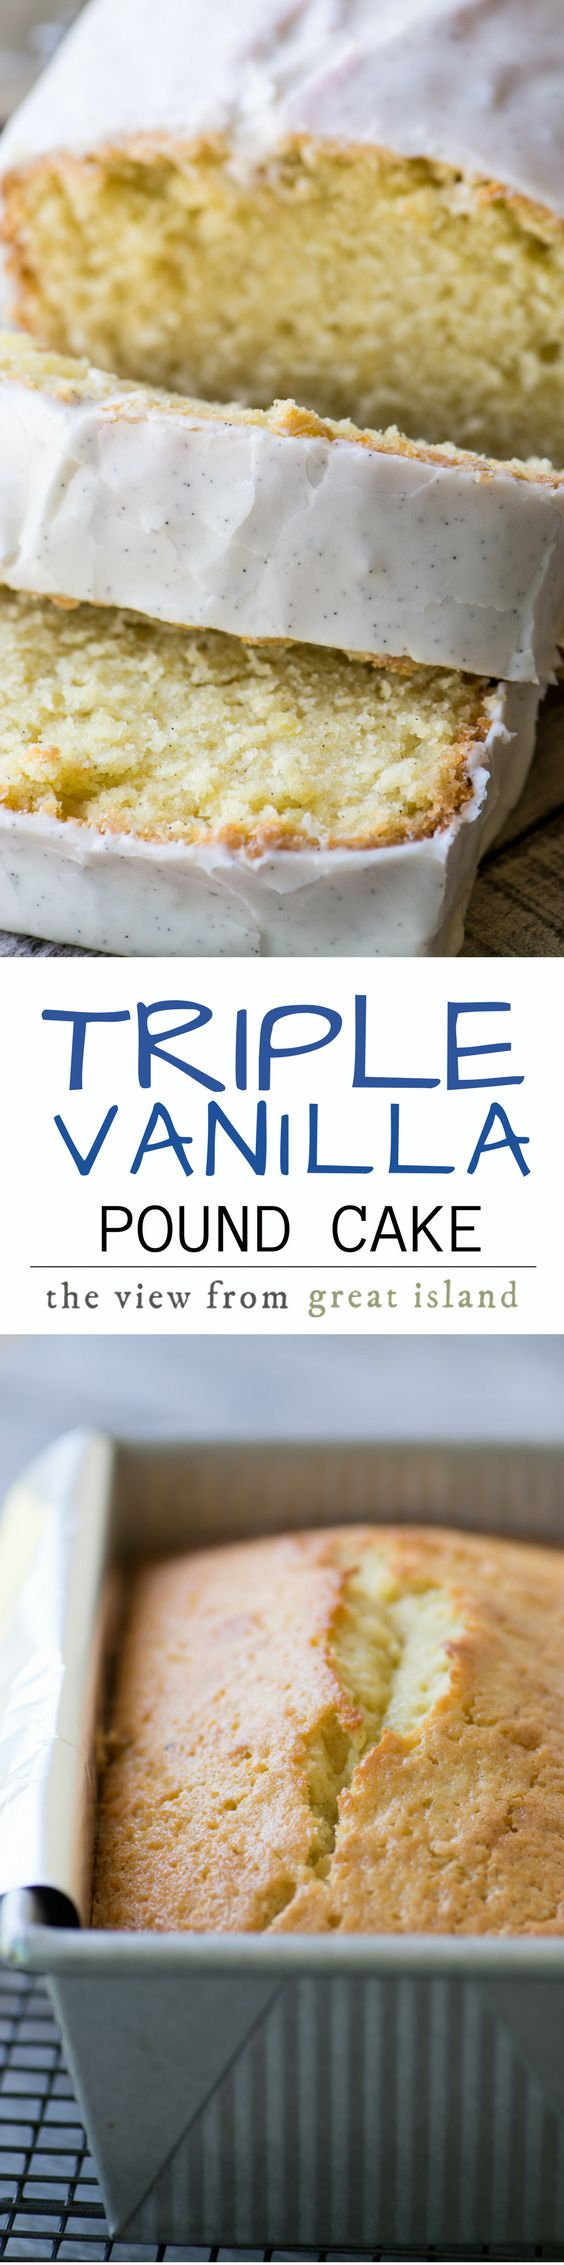 Triple Vanilla Pound Cake ~ not one, not two, but three layers of intense vanilla flavor to satisfy even the most serious vanilla fans. | coffee cake | breakfast | dessert | brunch | white cake | vanilla beans |